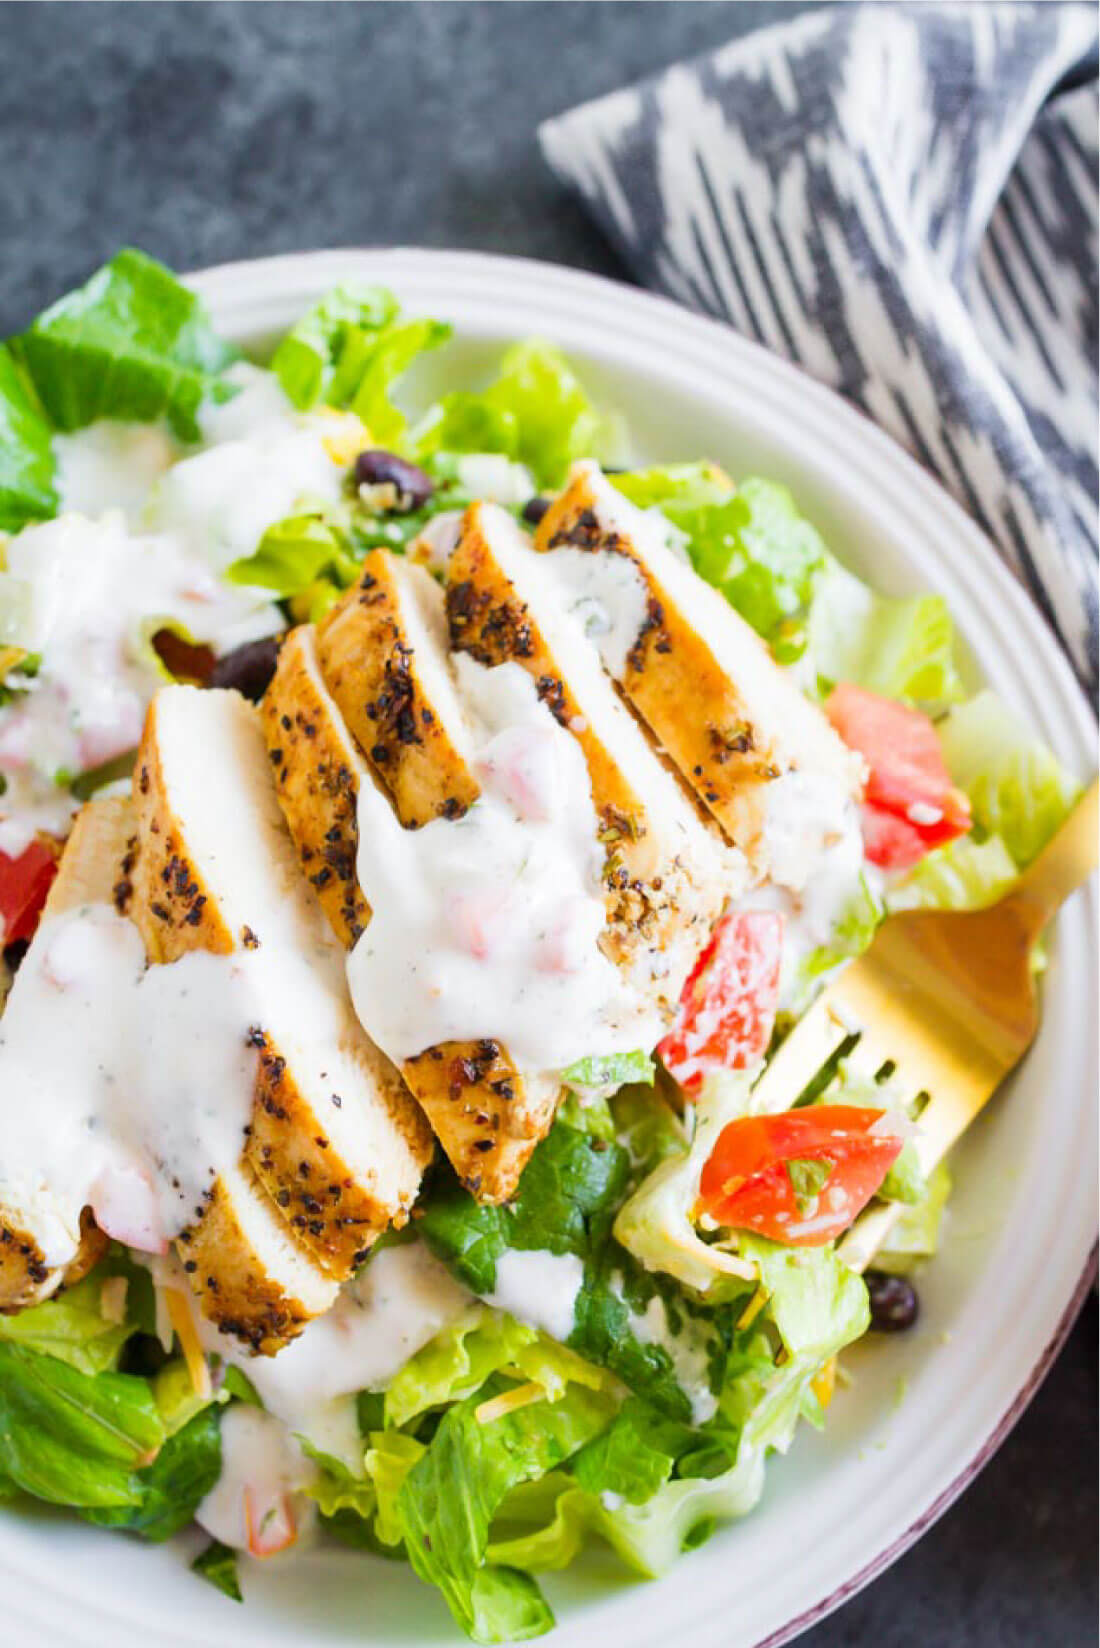 Santa Fe Chicken Salad - a simple, refreshing salad recipe that's perfect for summer! www.thirtyhandmadedays.com